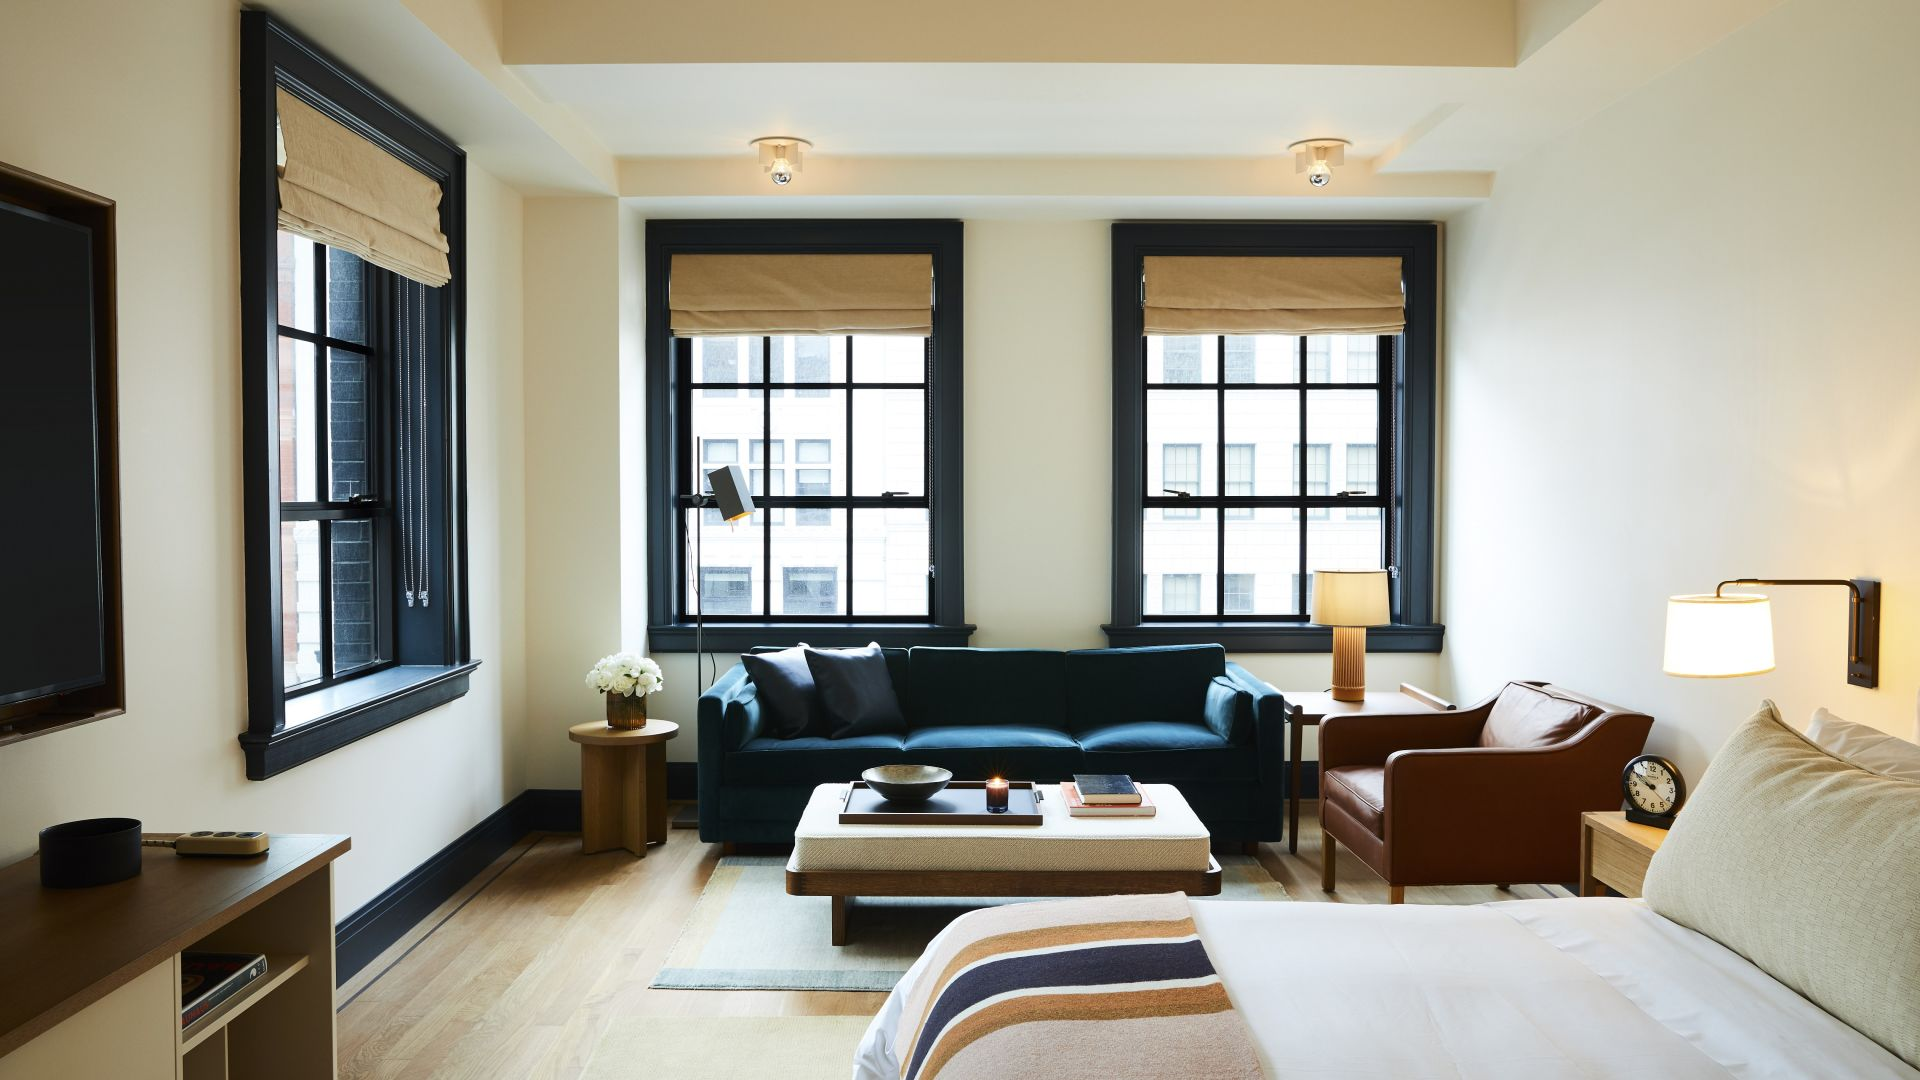 Shinola Hotel | A Boutique Hotel Downtown Detroit